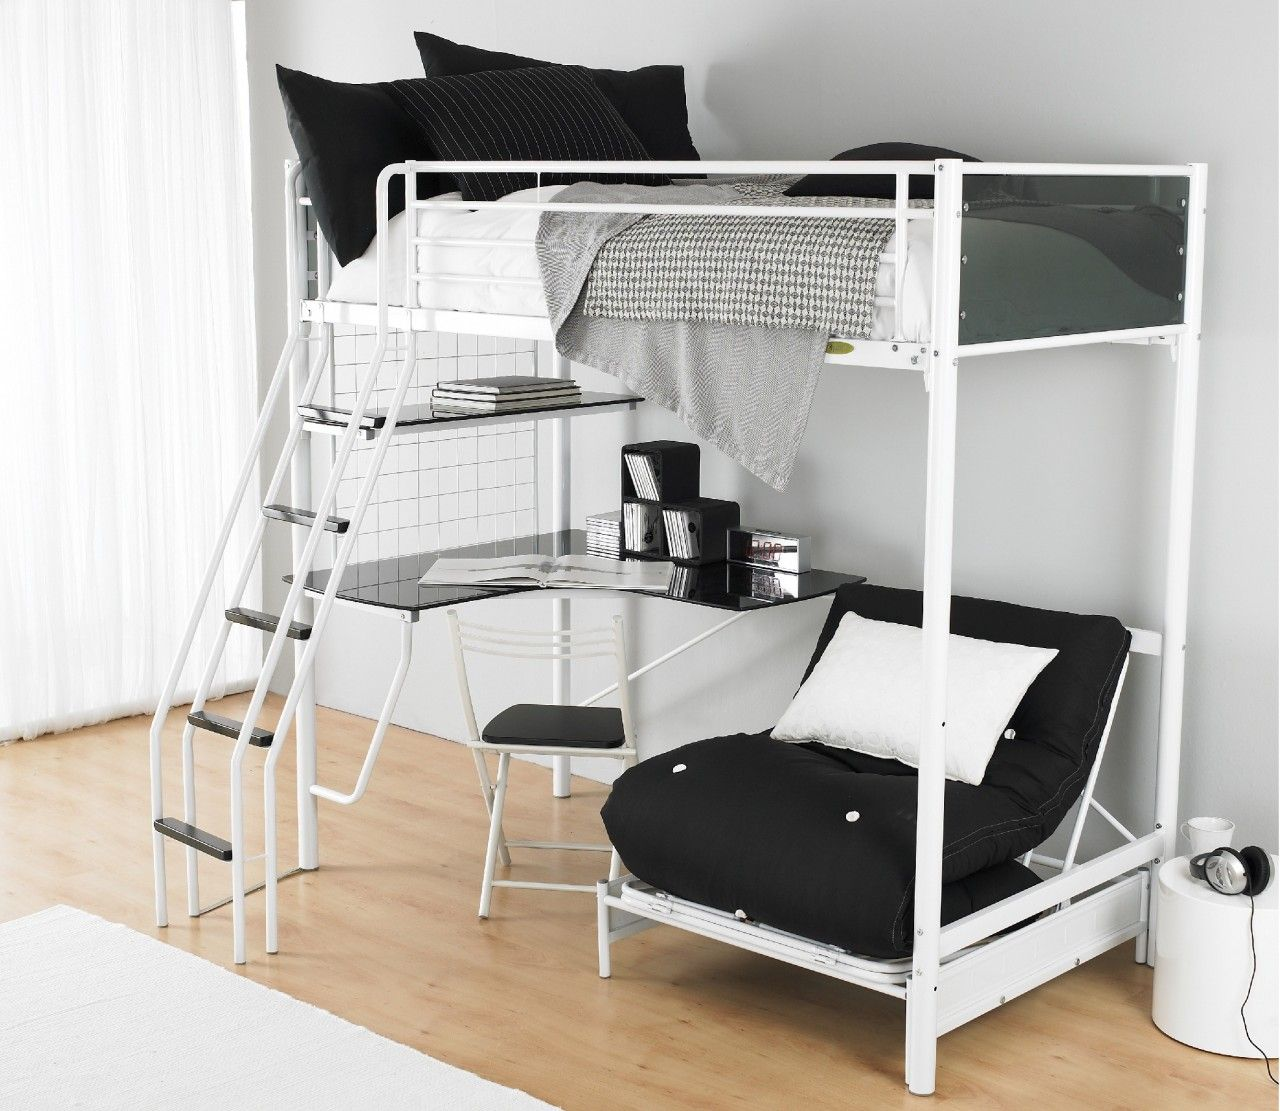 20 Cool Bunk Bed With Desk Designs | chambre à coucher | Pinterest ...